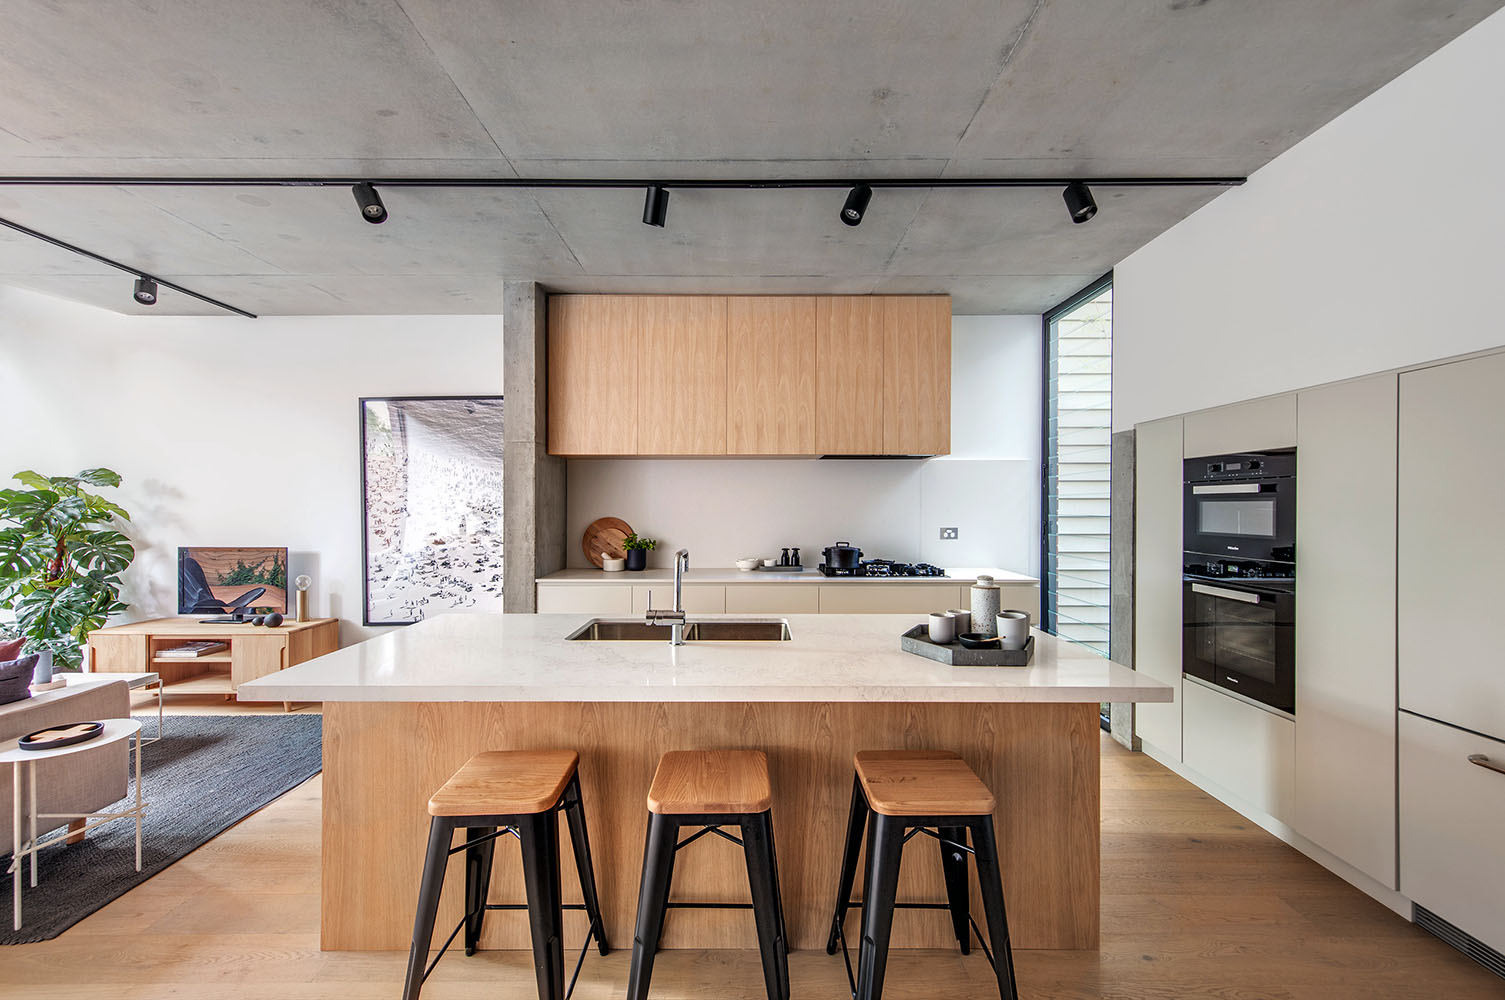 balmain_residence_co-ap_architects_and_ballast_point_building_architectural_photography_murray_fredericks